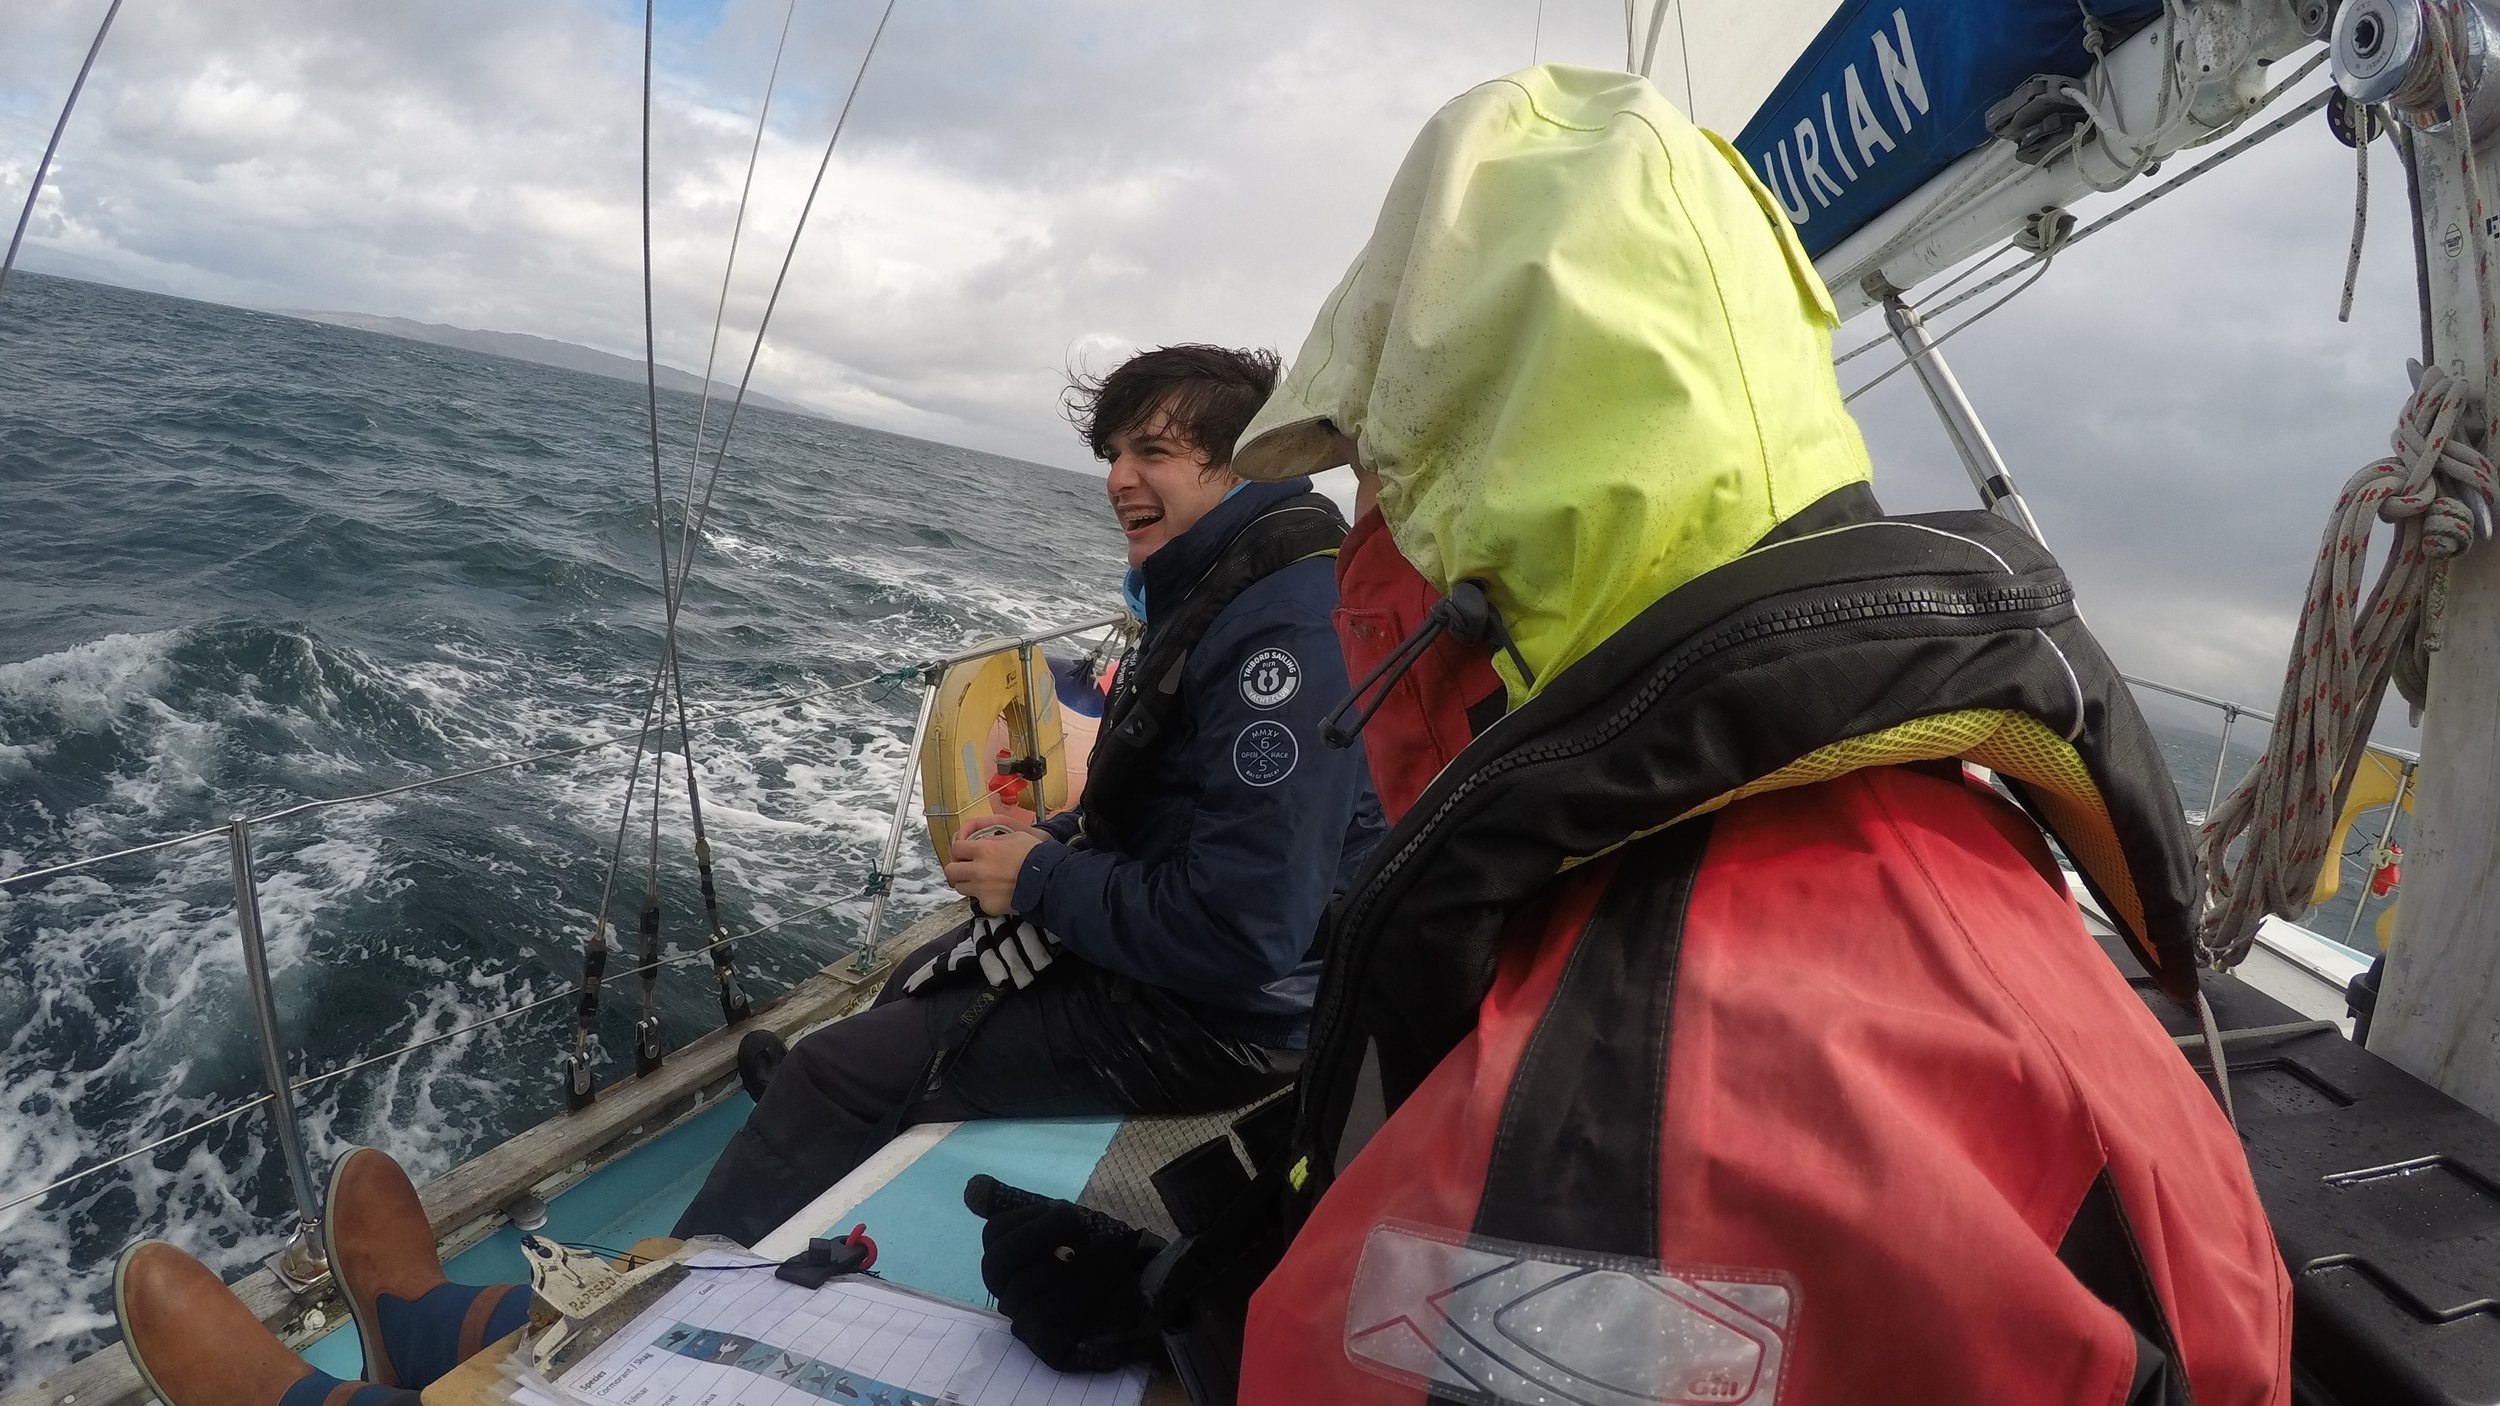 Wet and windy... but we are still smiling!